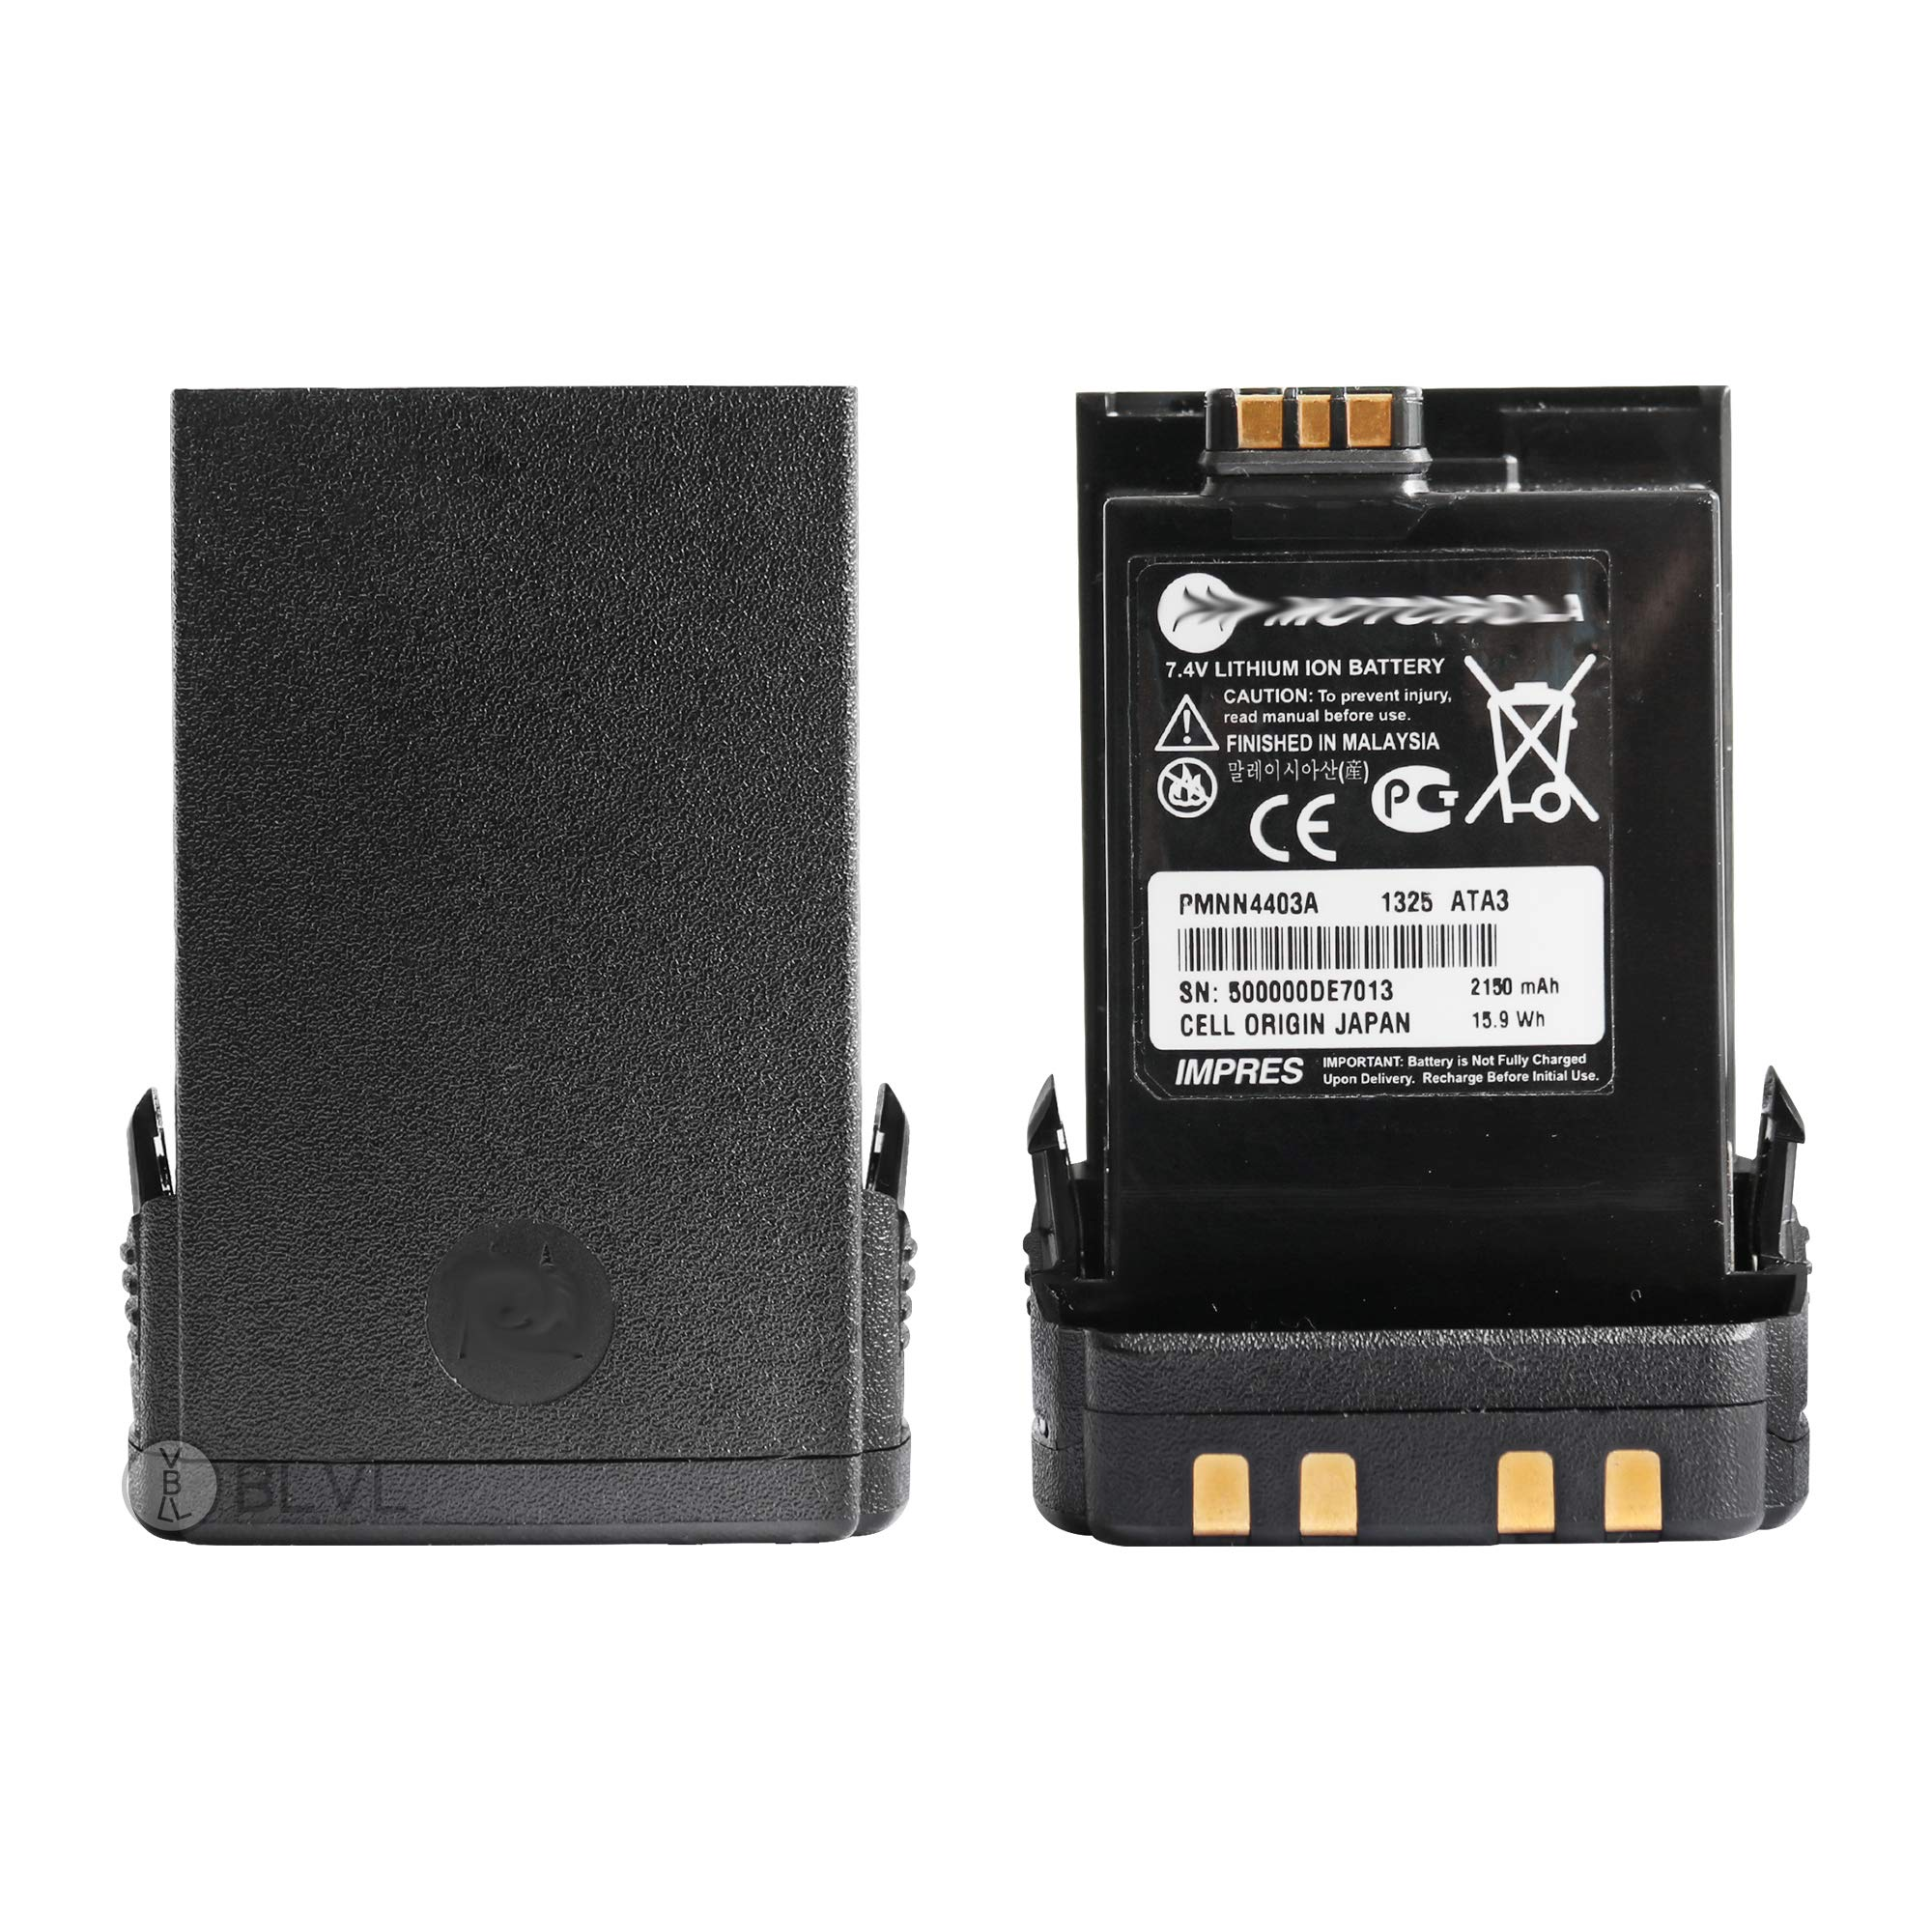 GSTZ OEM PMNN4403 7.4V Li-ion Battery for Motorola APX8000 APX7000 APX6000 SRX2200 Radio